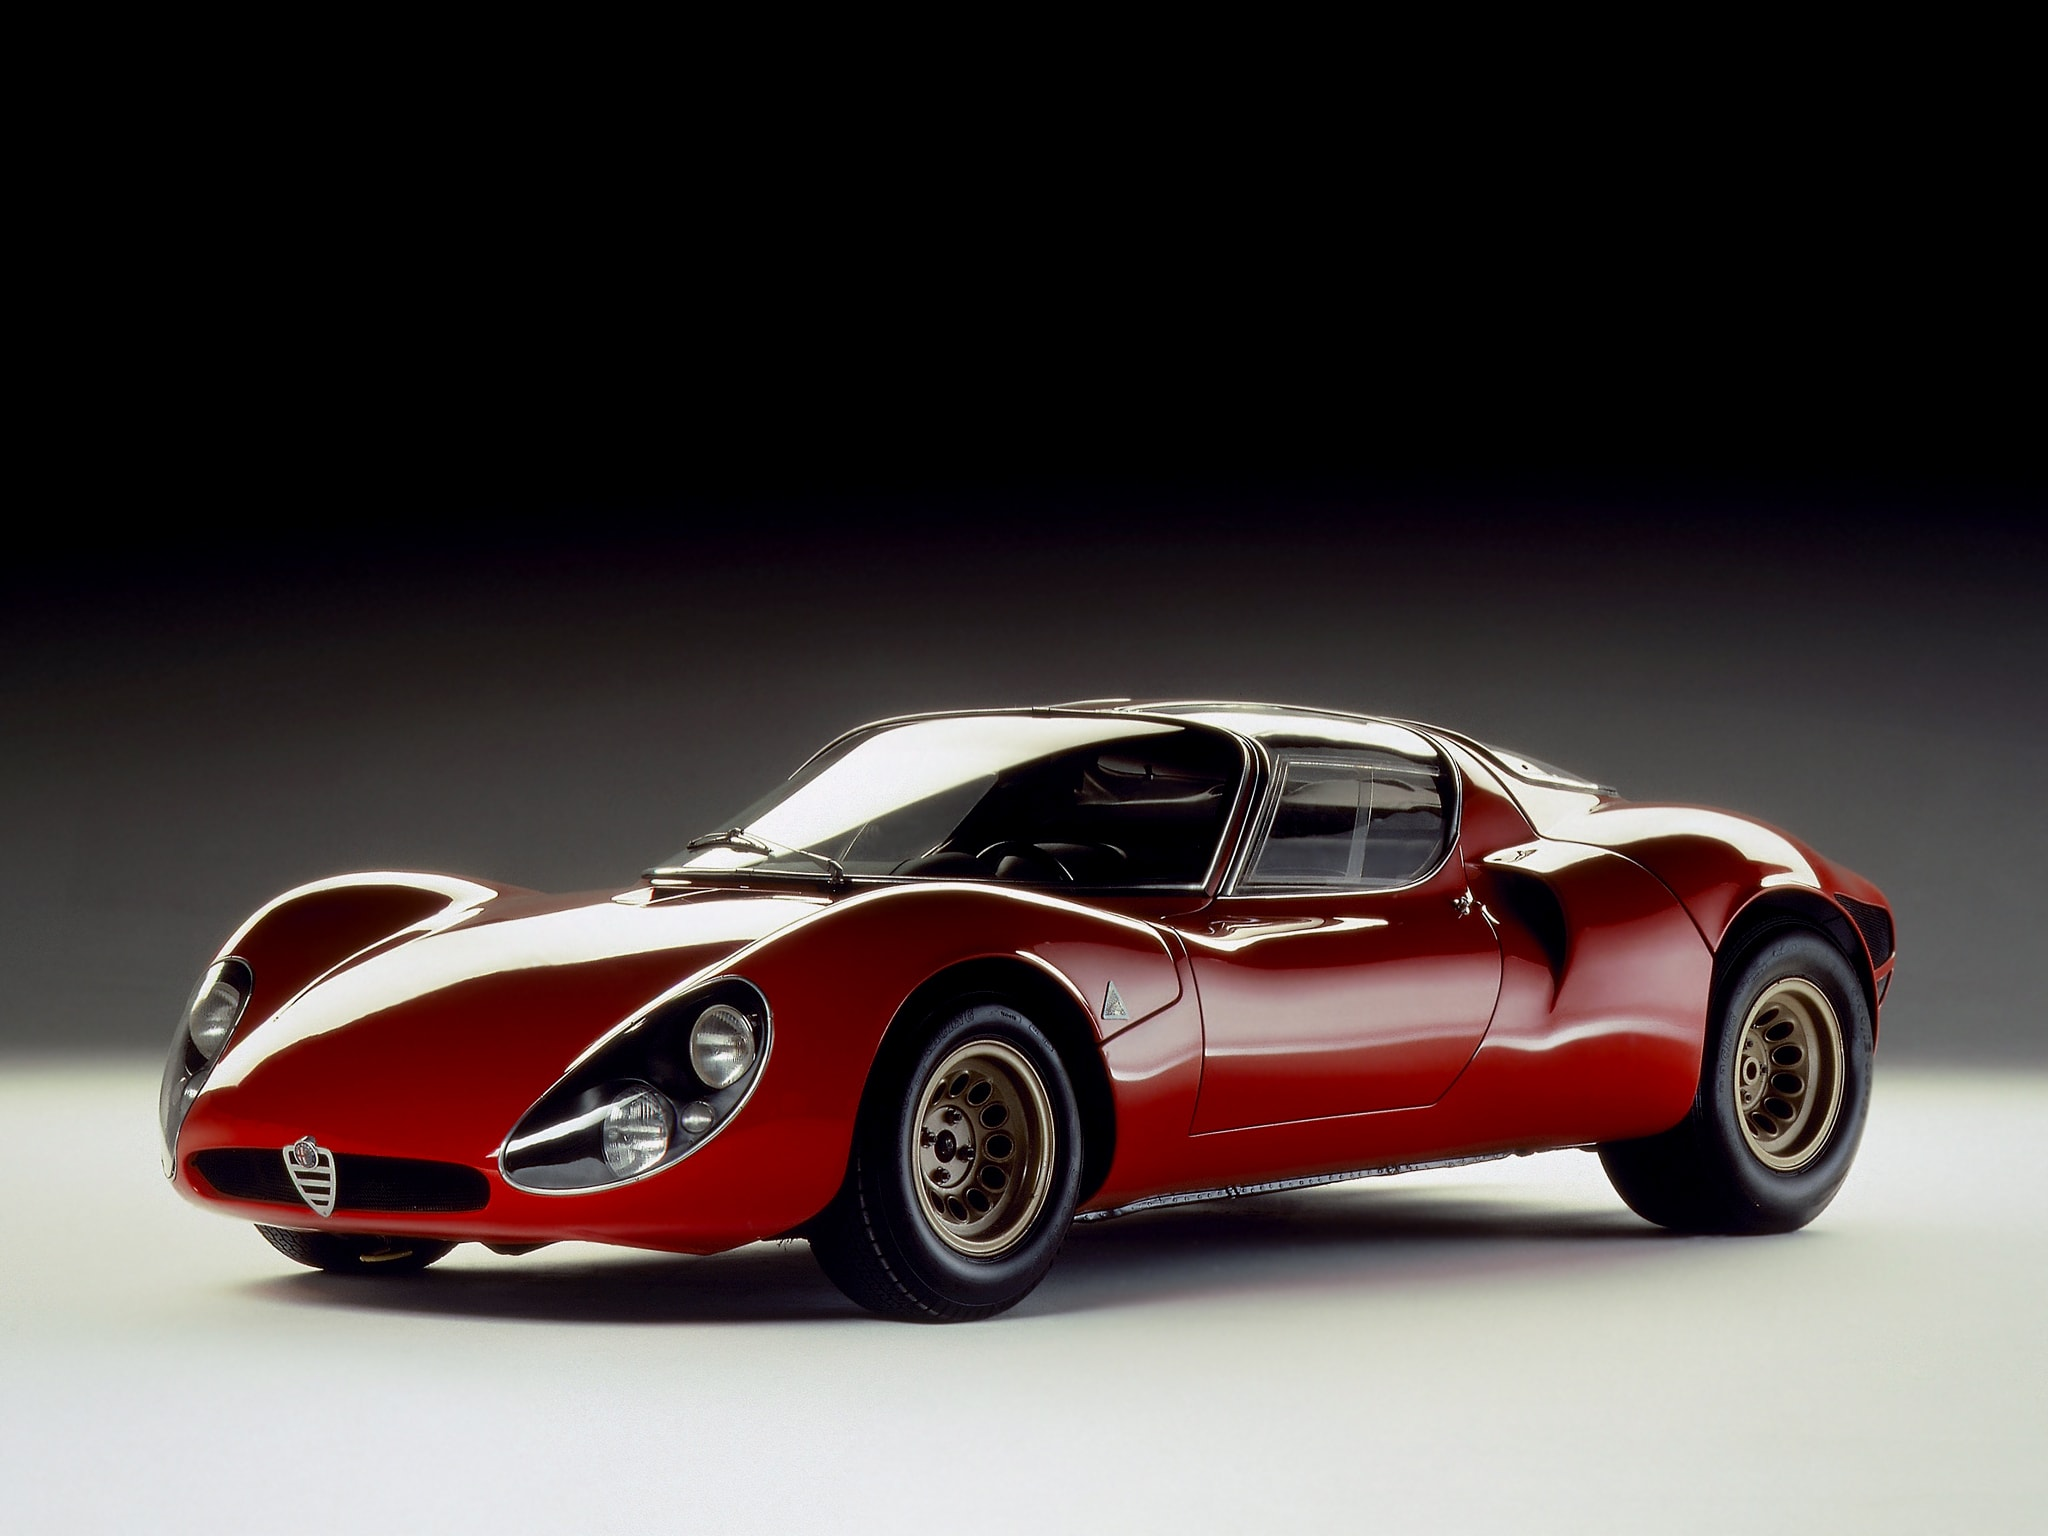 Alfa Romeo Tipo 33 Stradale widescreen wallpapers